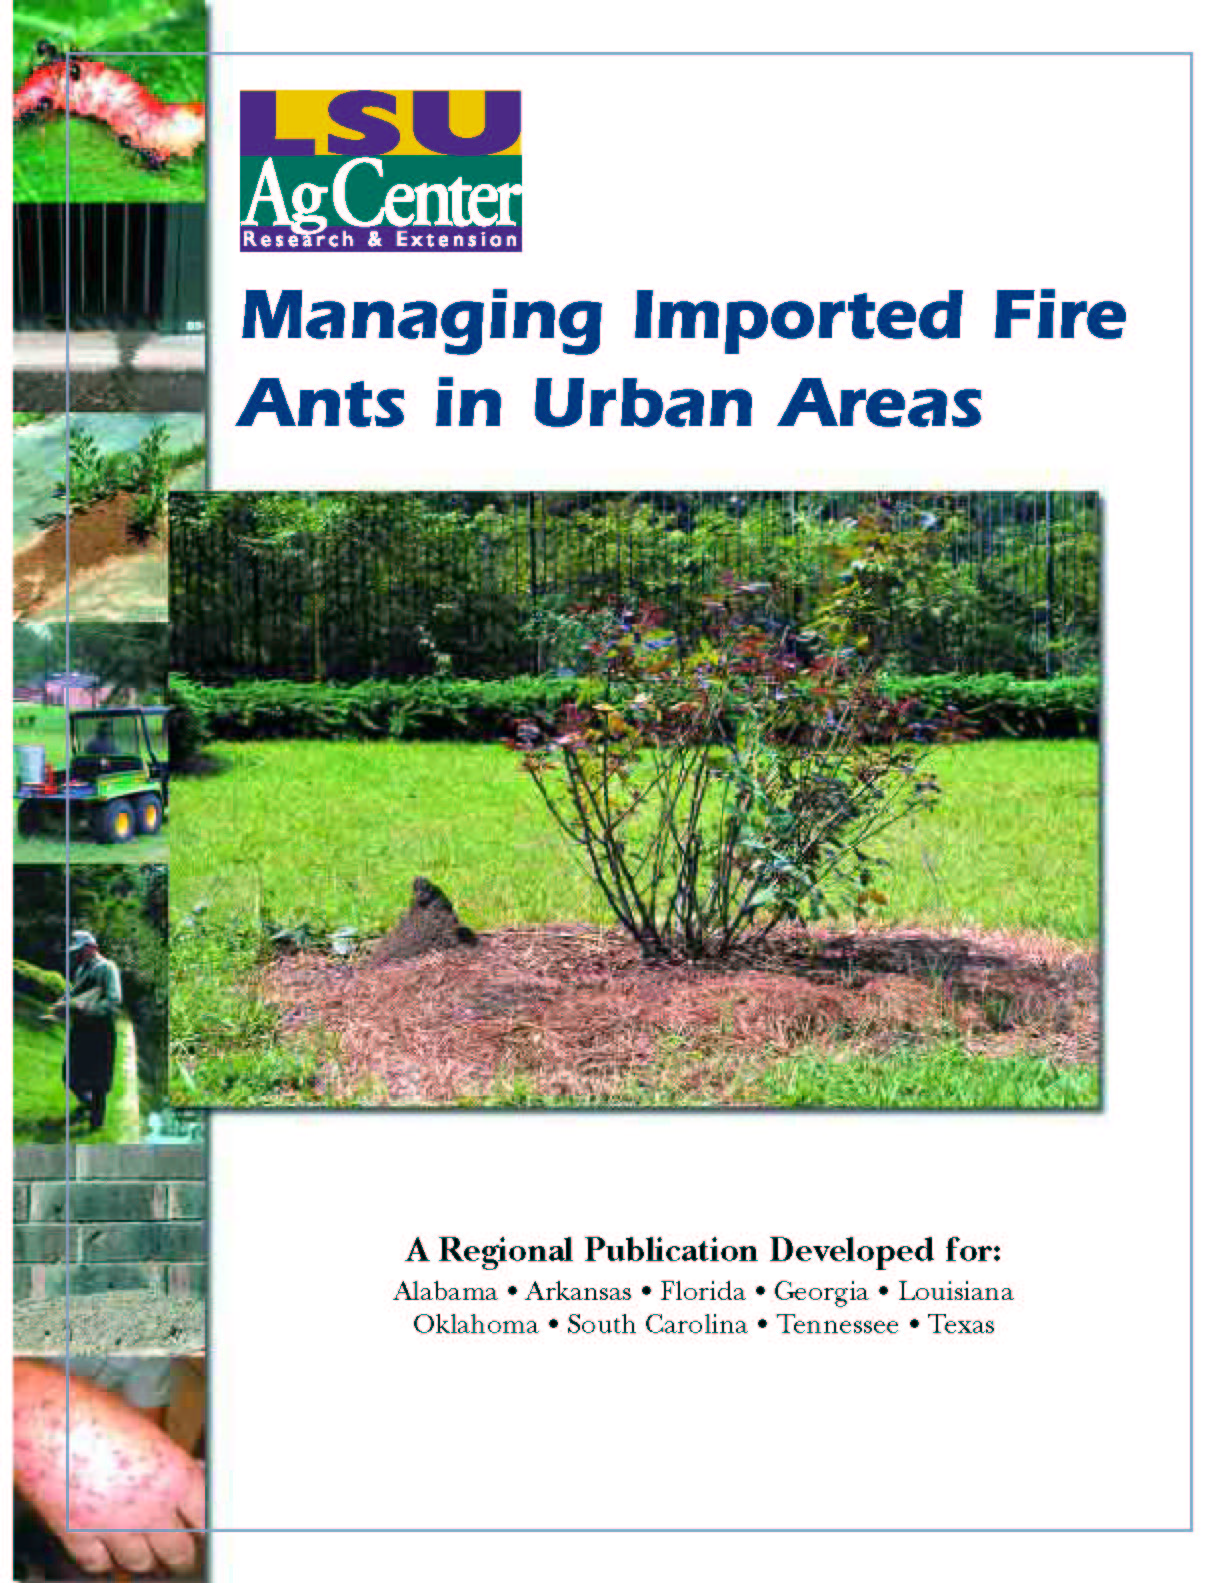 Managing Imported Fire Ants in Urban Areas